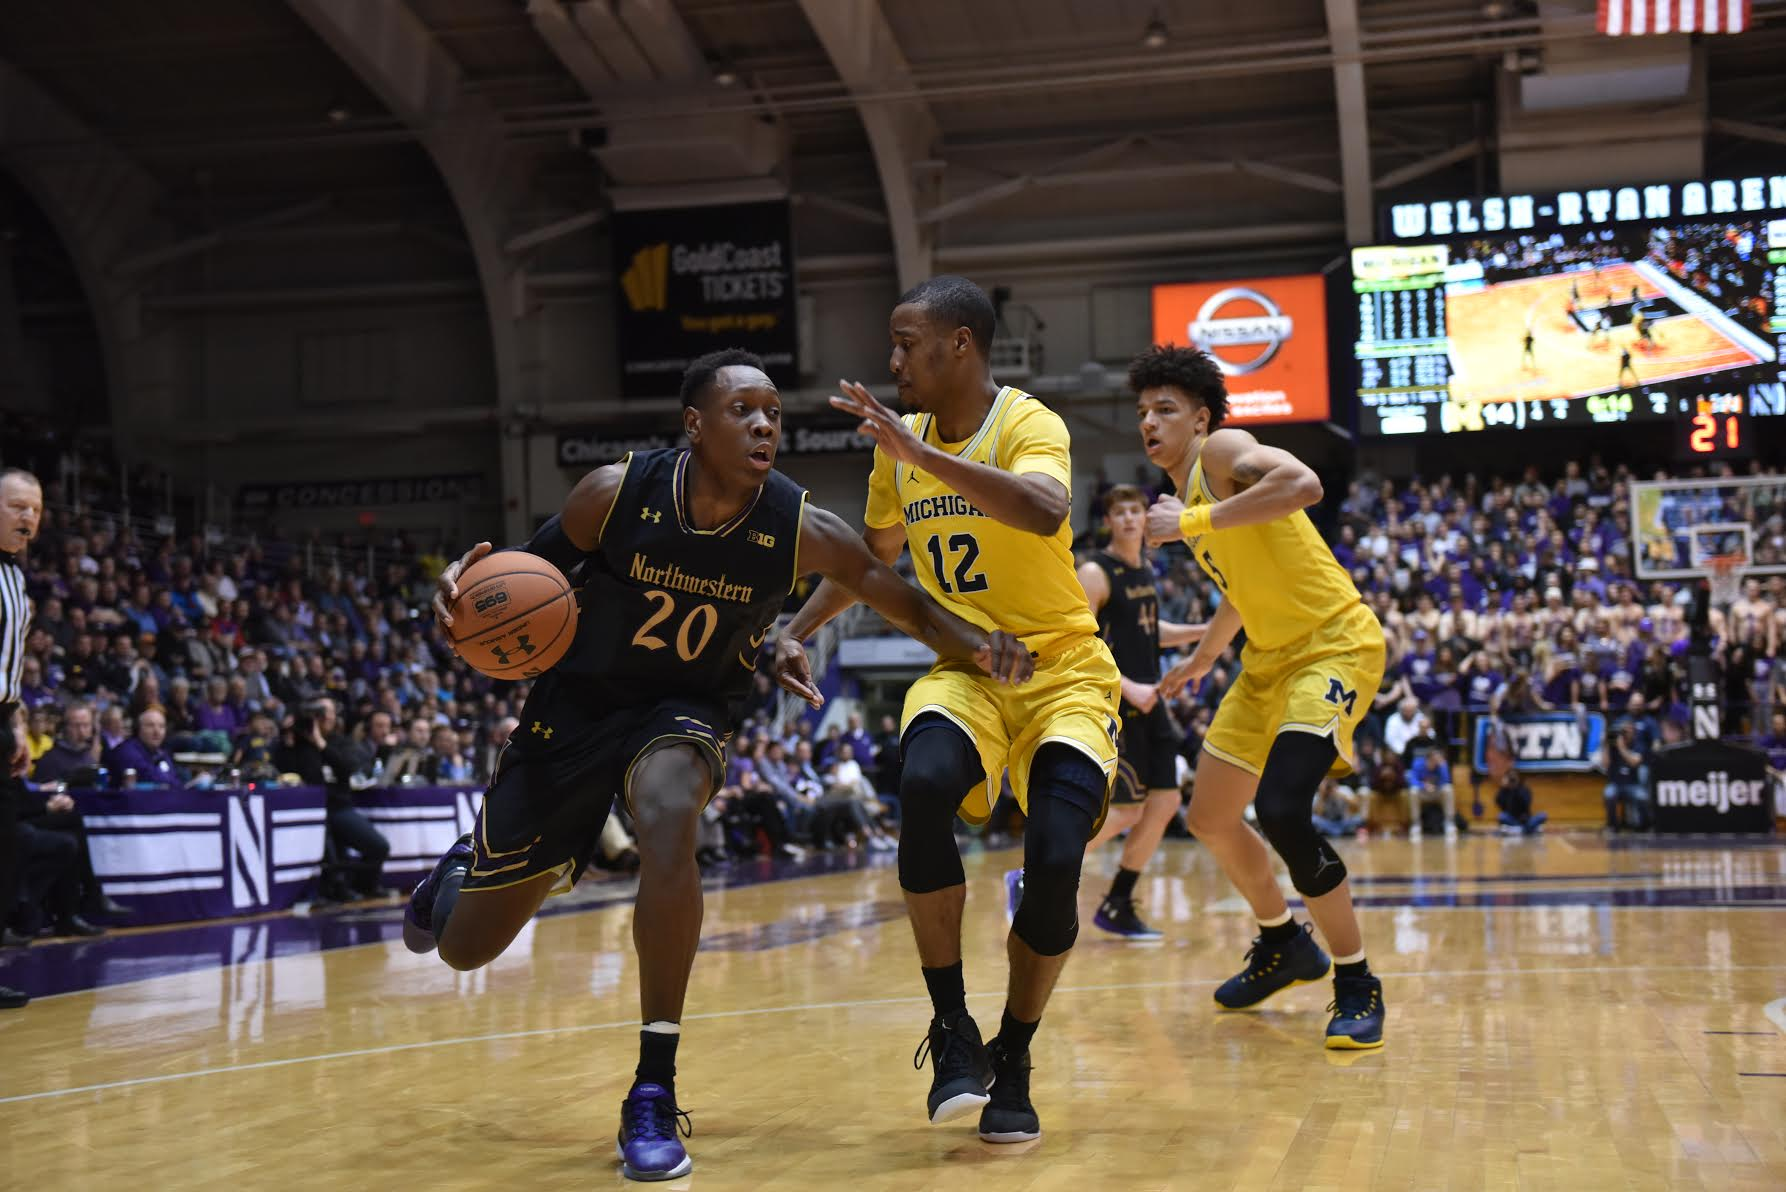 Scottie Lindsey dribbles past a defender. The Wildcats held off Michigan at home to earn the program's first-ever 21st regular season win.